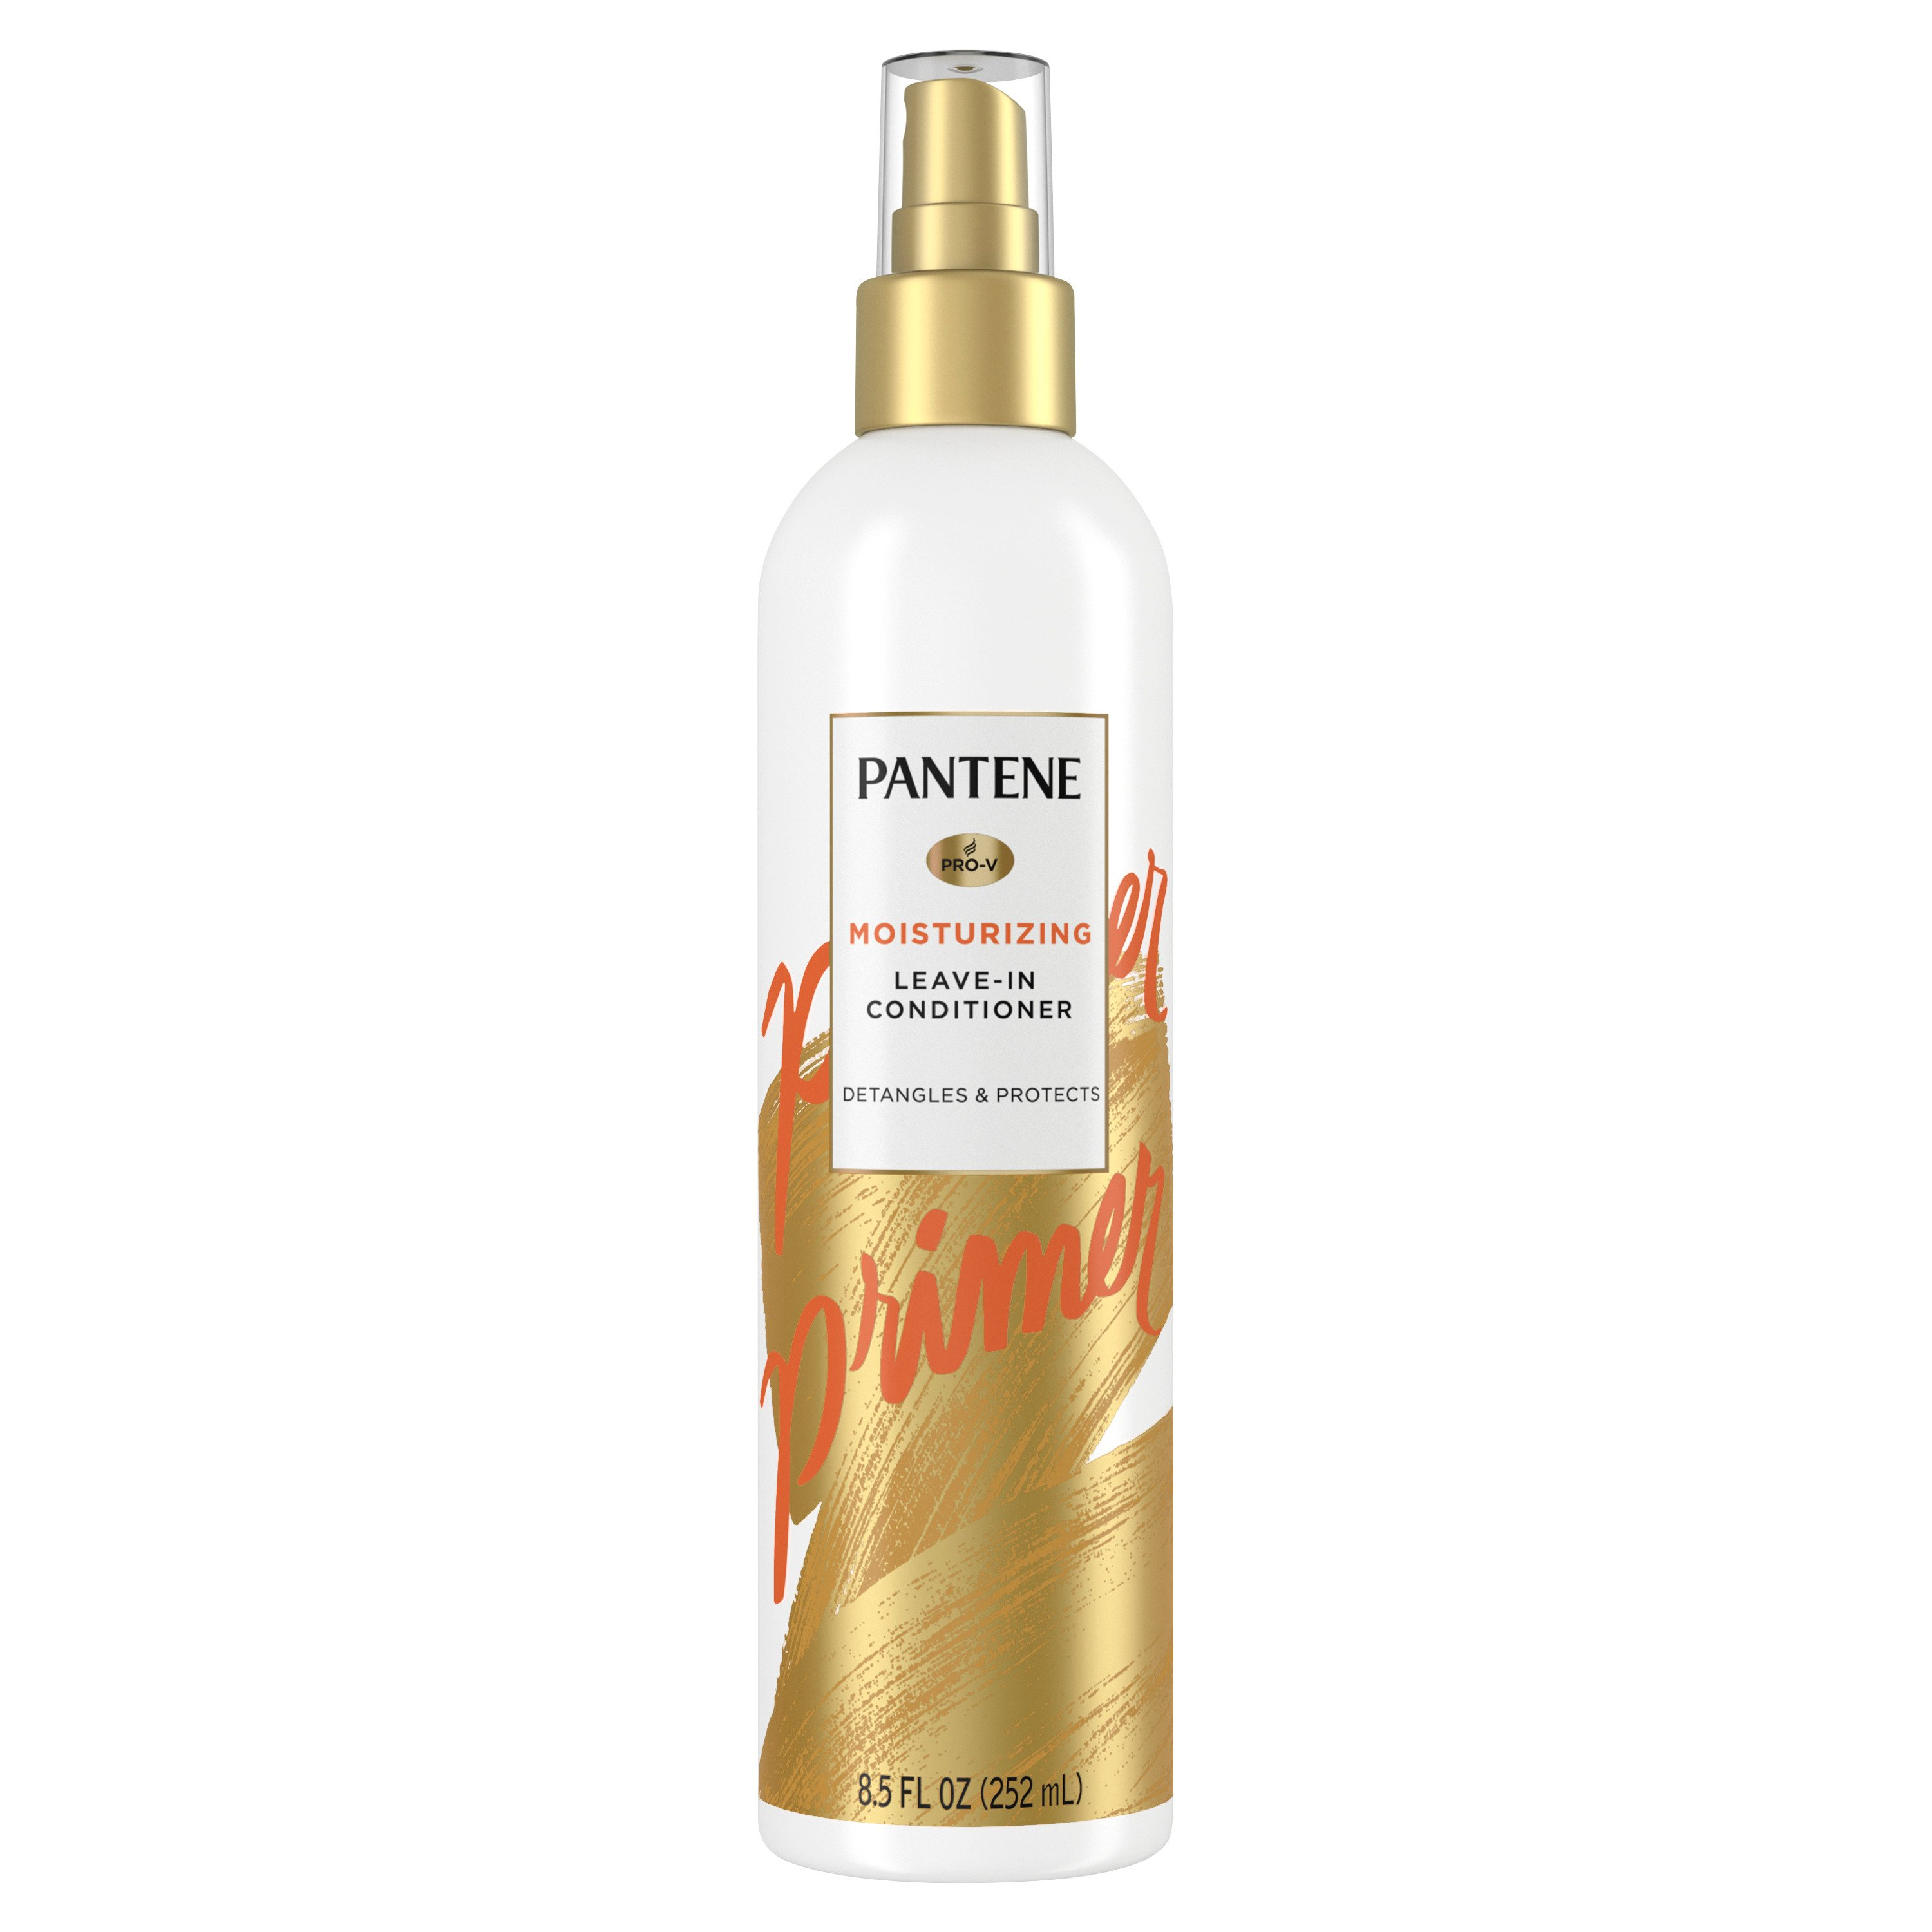 Pantene Pro V Repair Protect Conditioning Detangler Mist Shop Styling Products Treatments At H E B